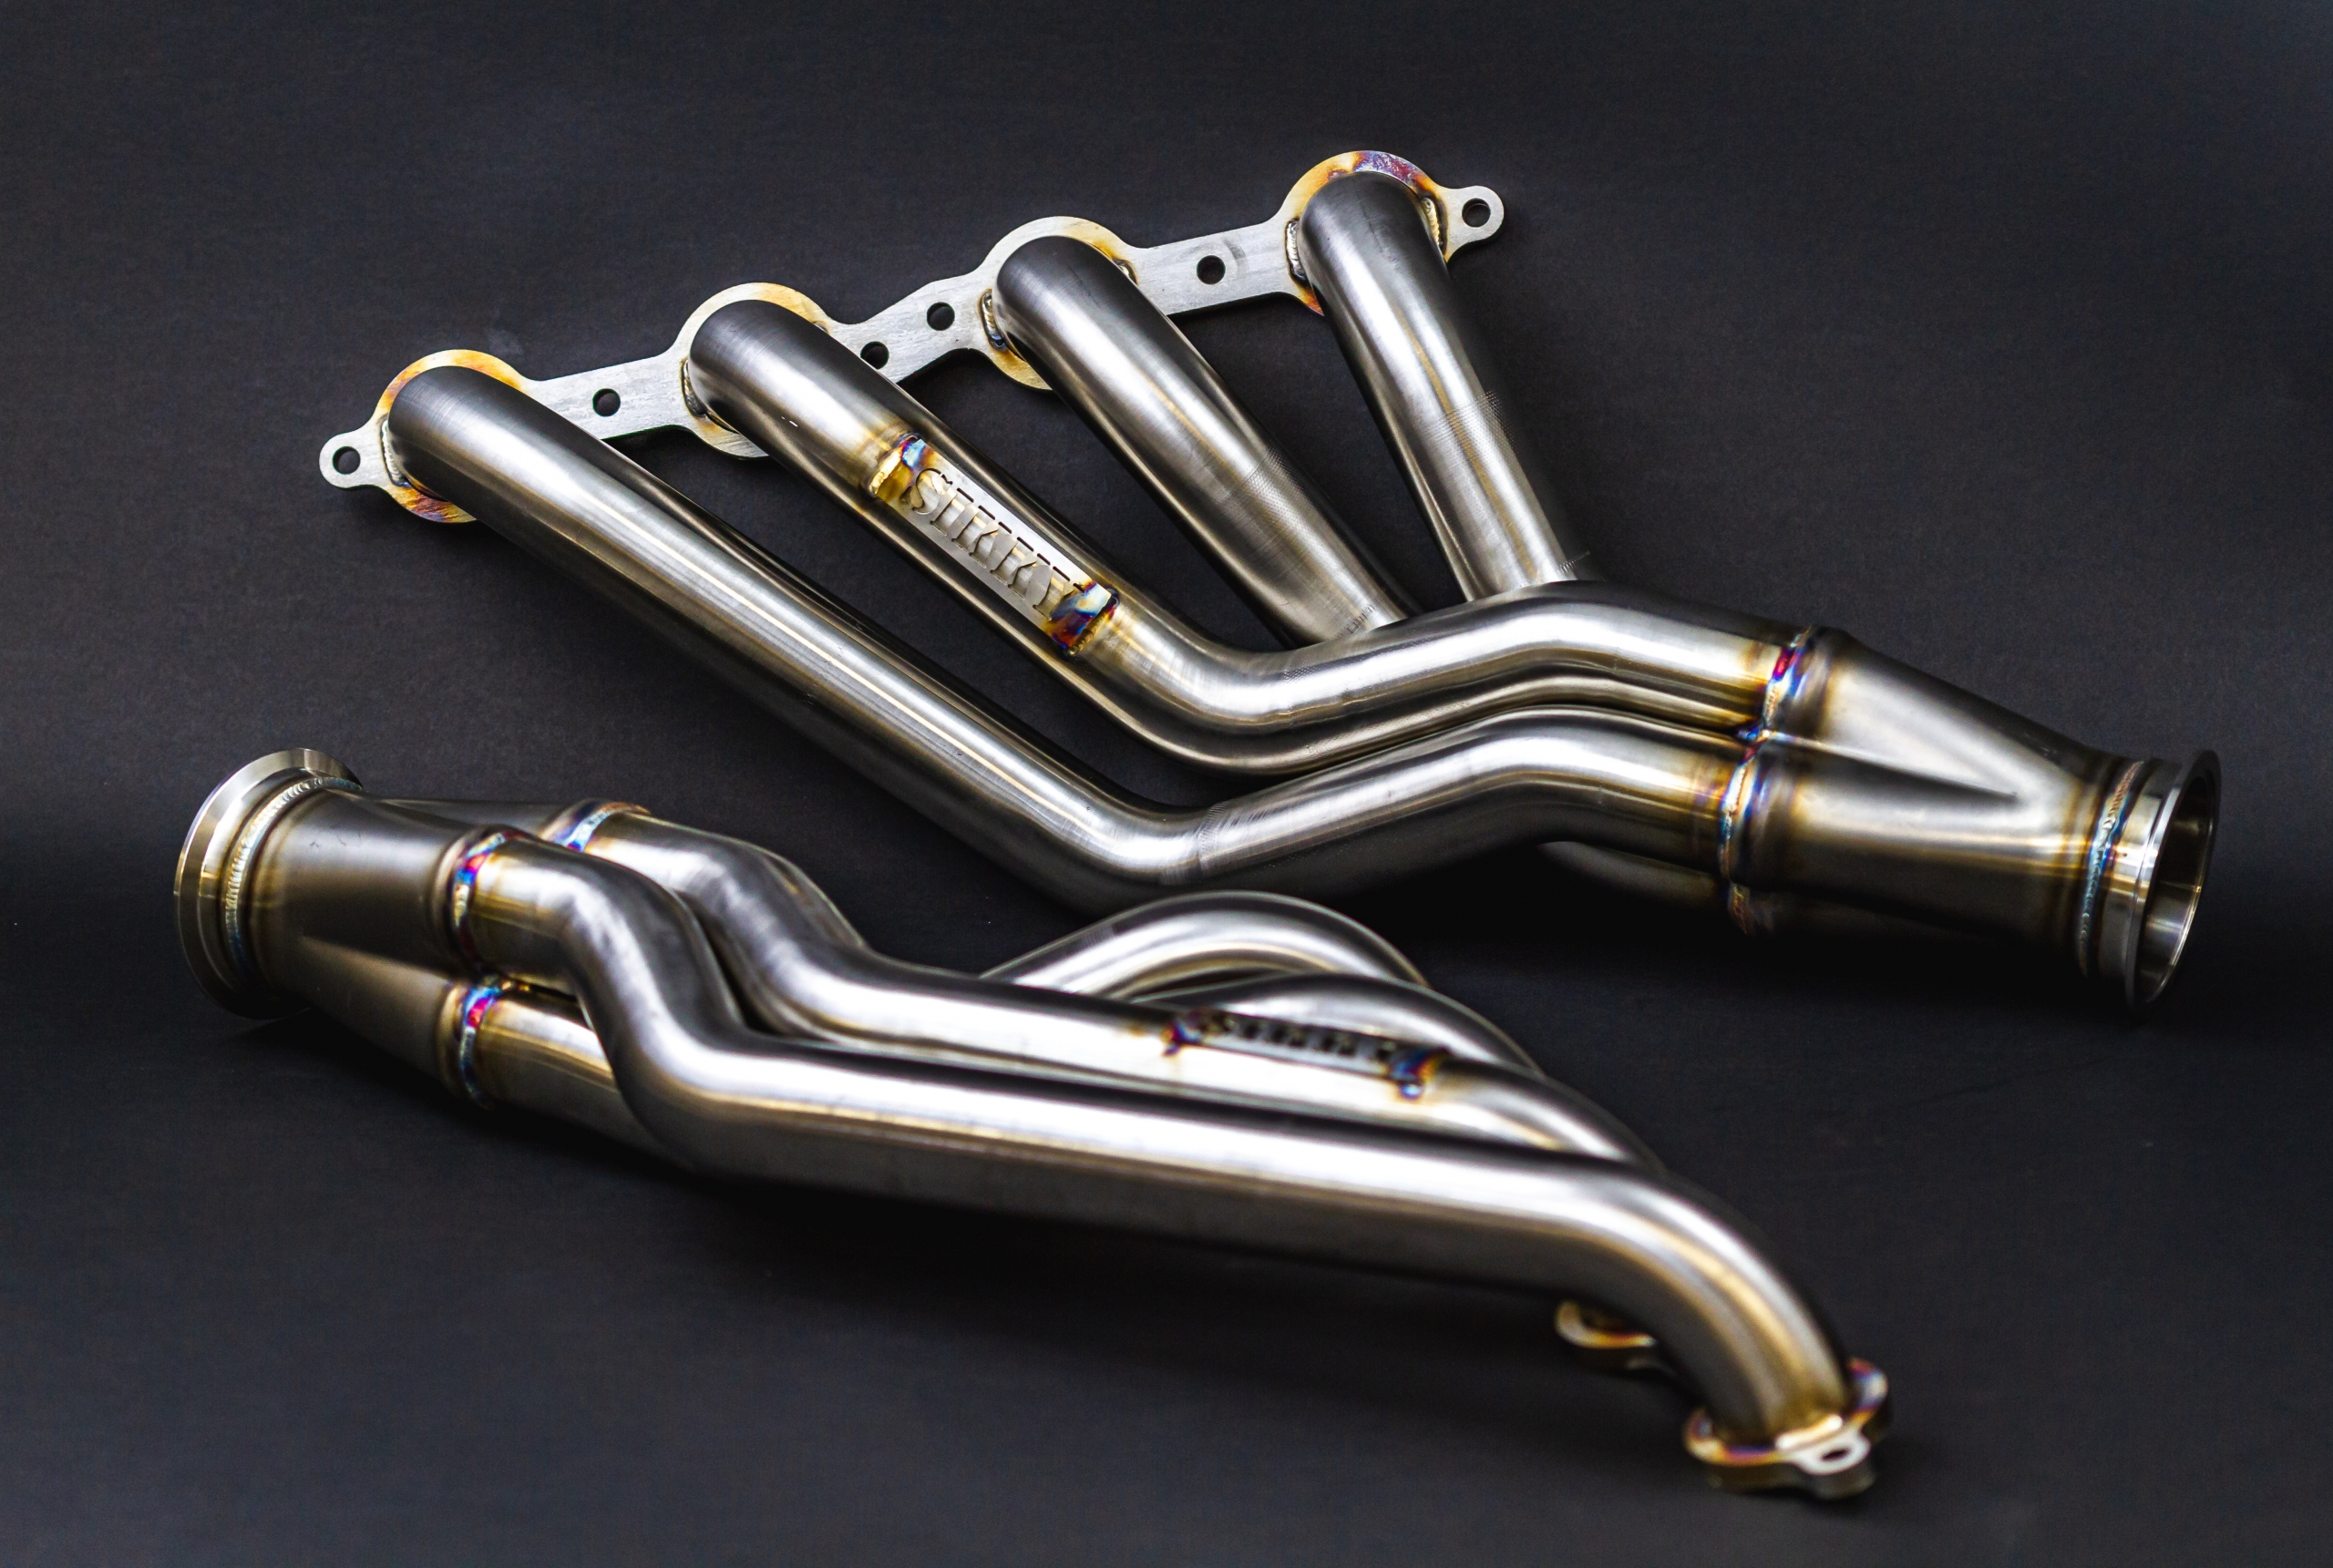 Sikky Infiniti G35 LS Swap Headers - Stainless Steel Pro Series